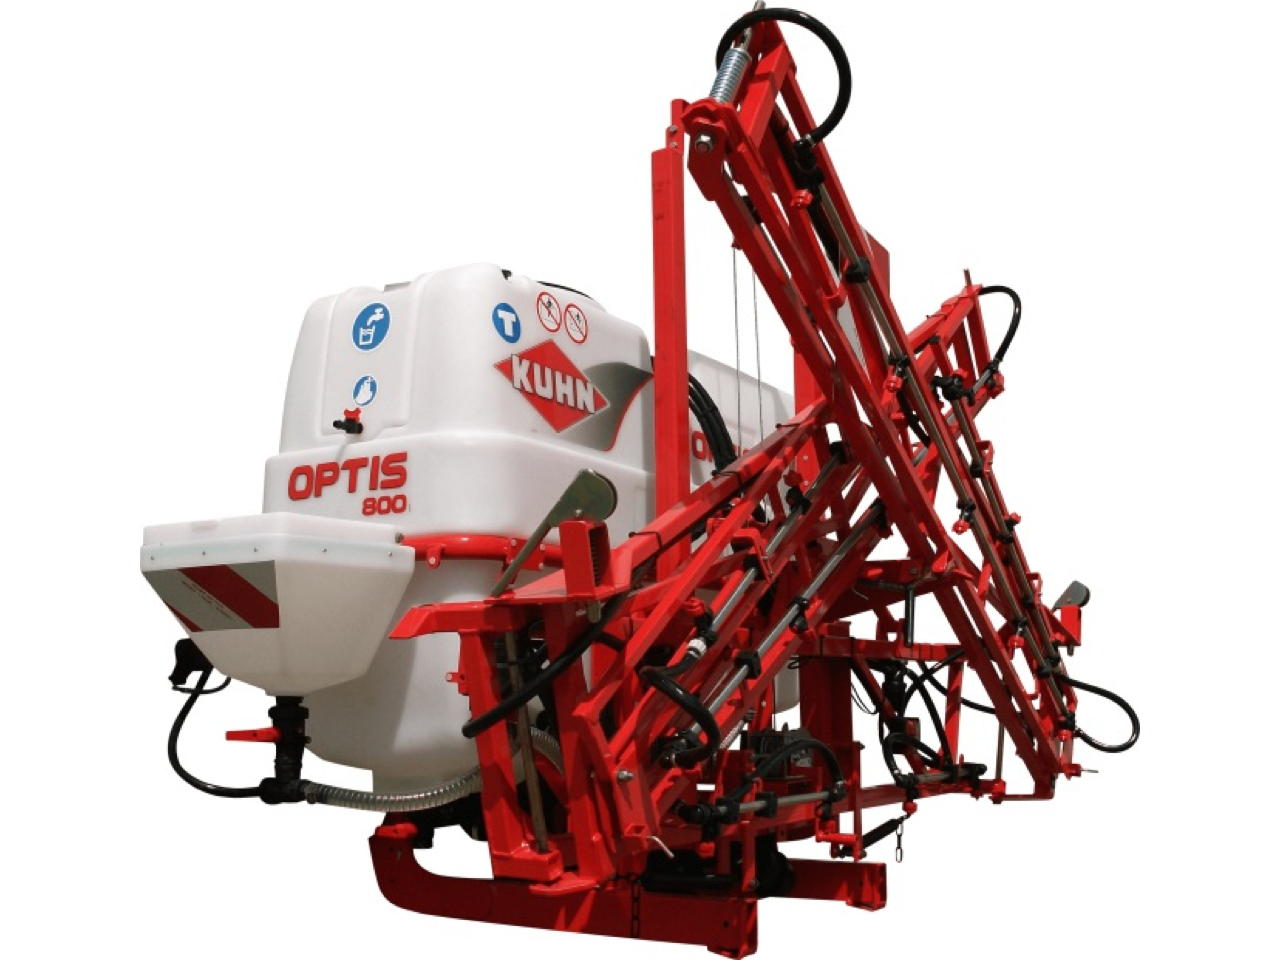 Kuhn Optis Optis 1000